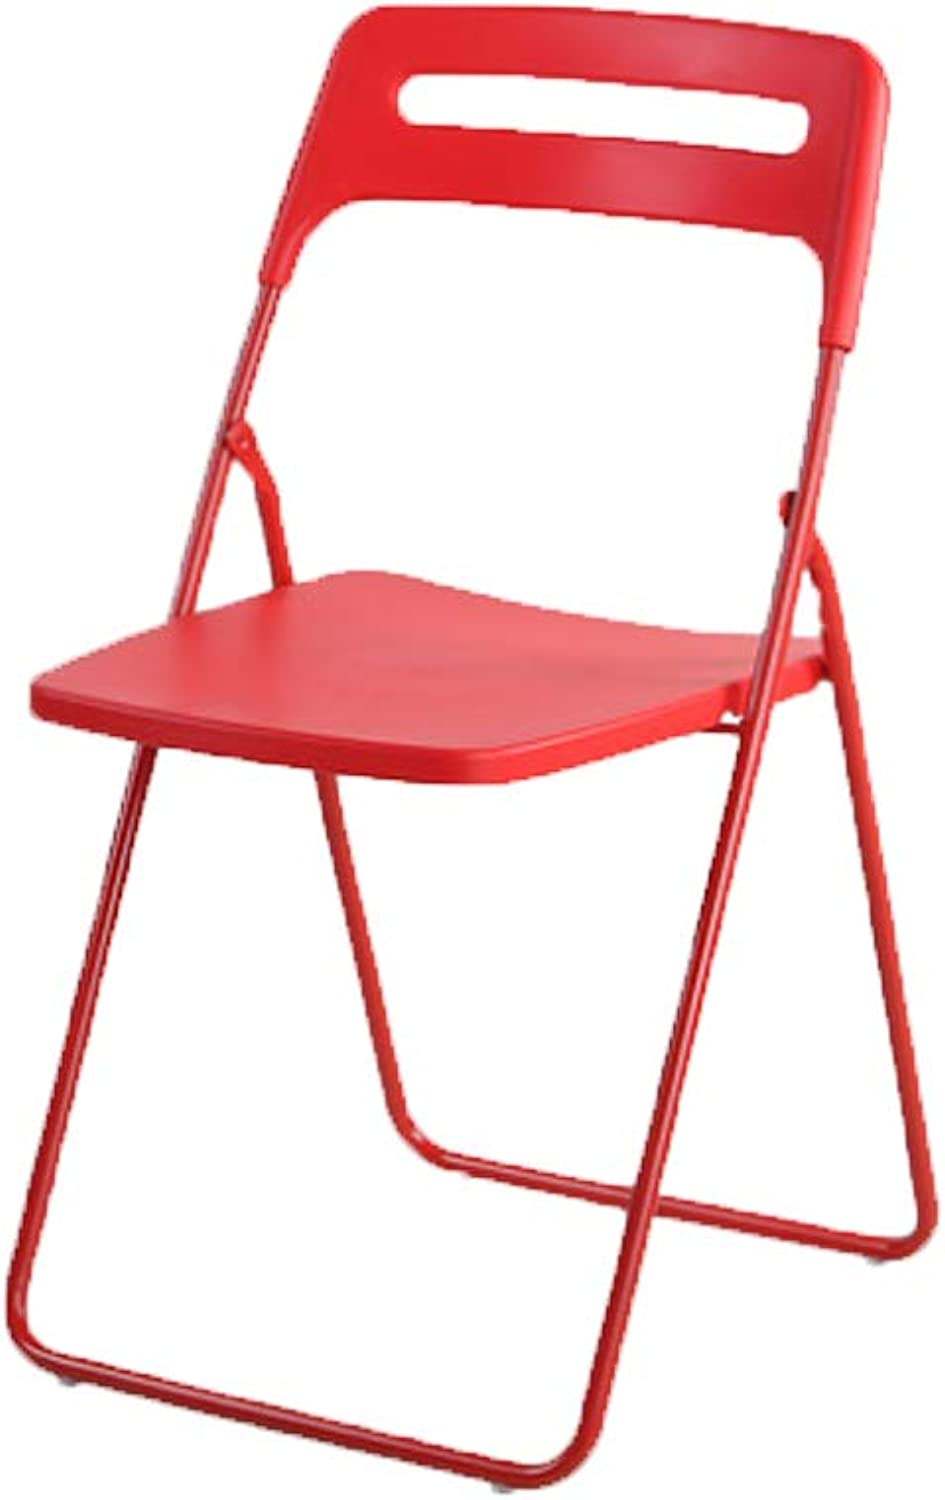 Folding Chair - Home Portable Chair Adult Dining Chair (color   RED)